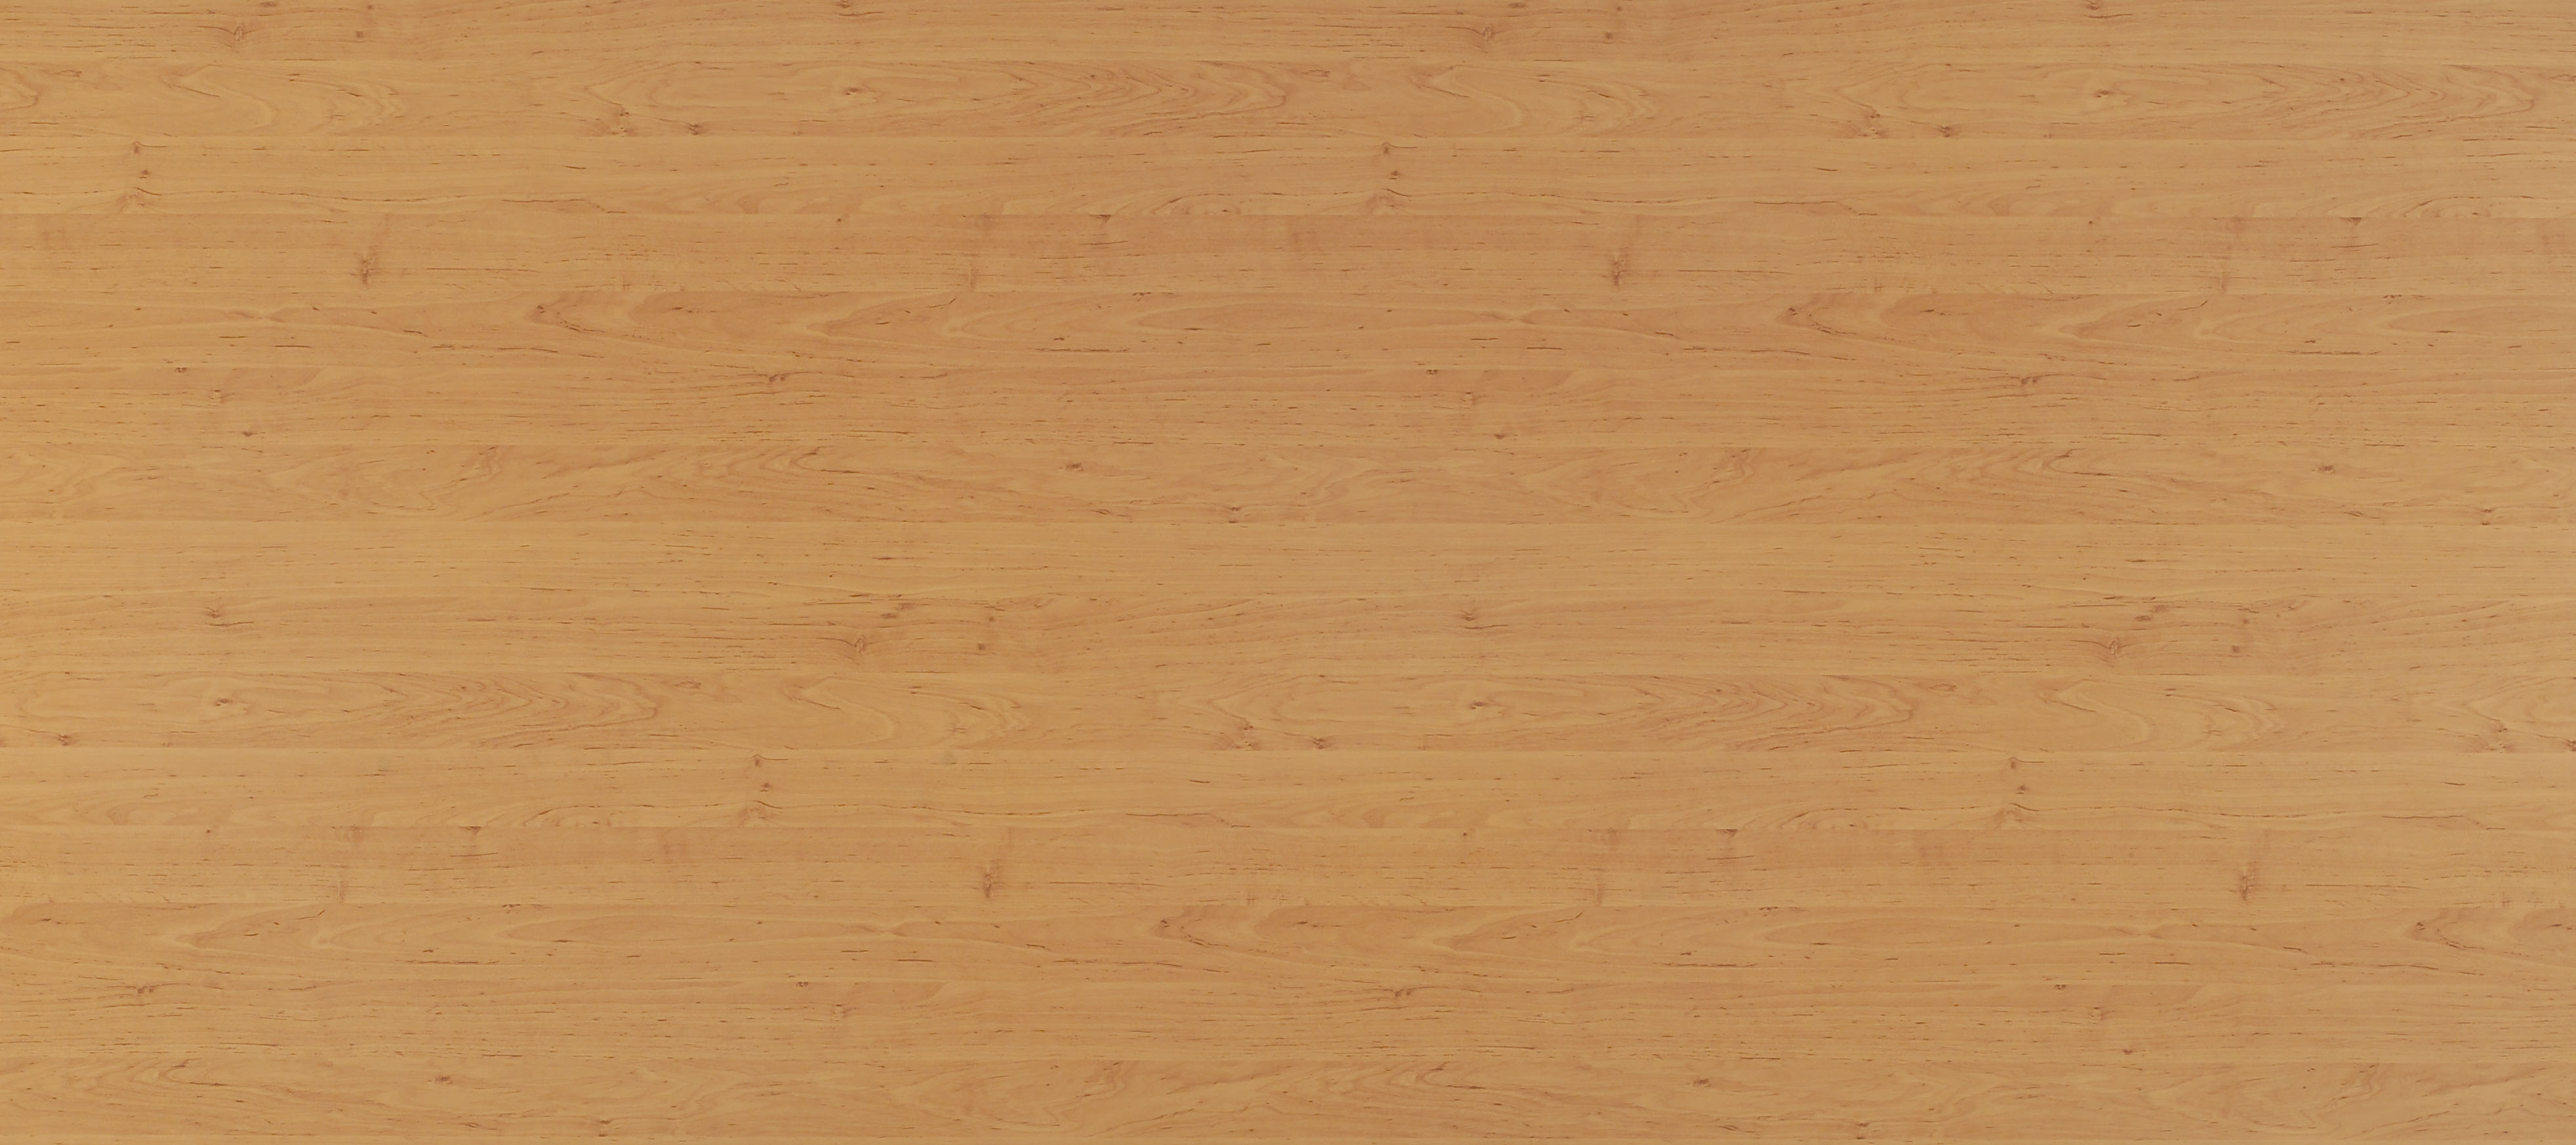 Texture wood free download photo download wood texture for Texture background free download